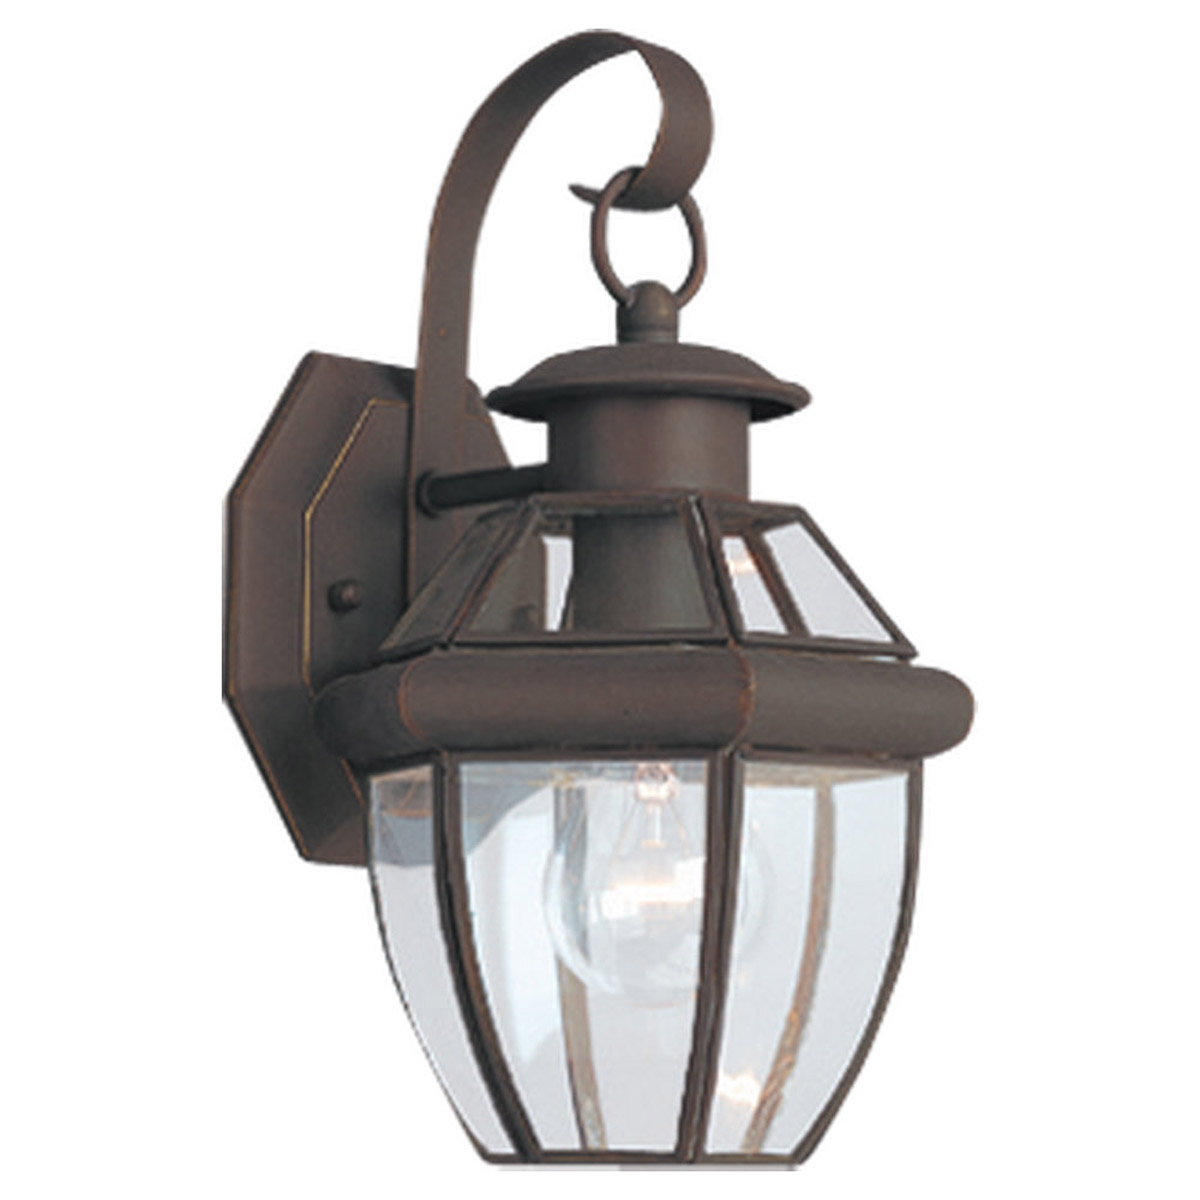 Sea Gull Lighting Lancaster 1 Light Outdoor Wall Lantern in Antique Bronze 8037-71 photo